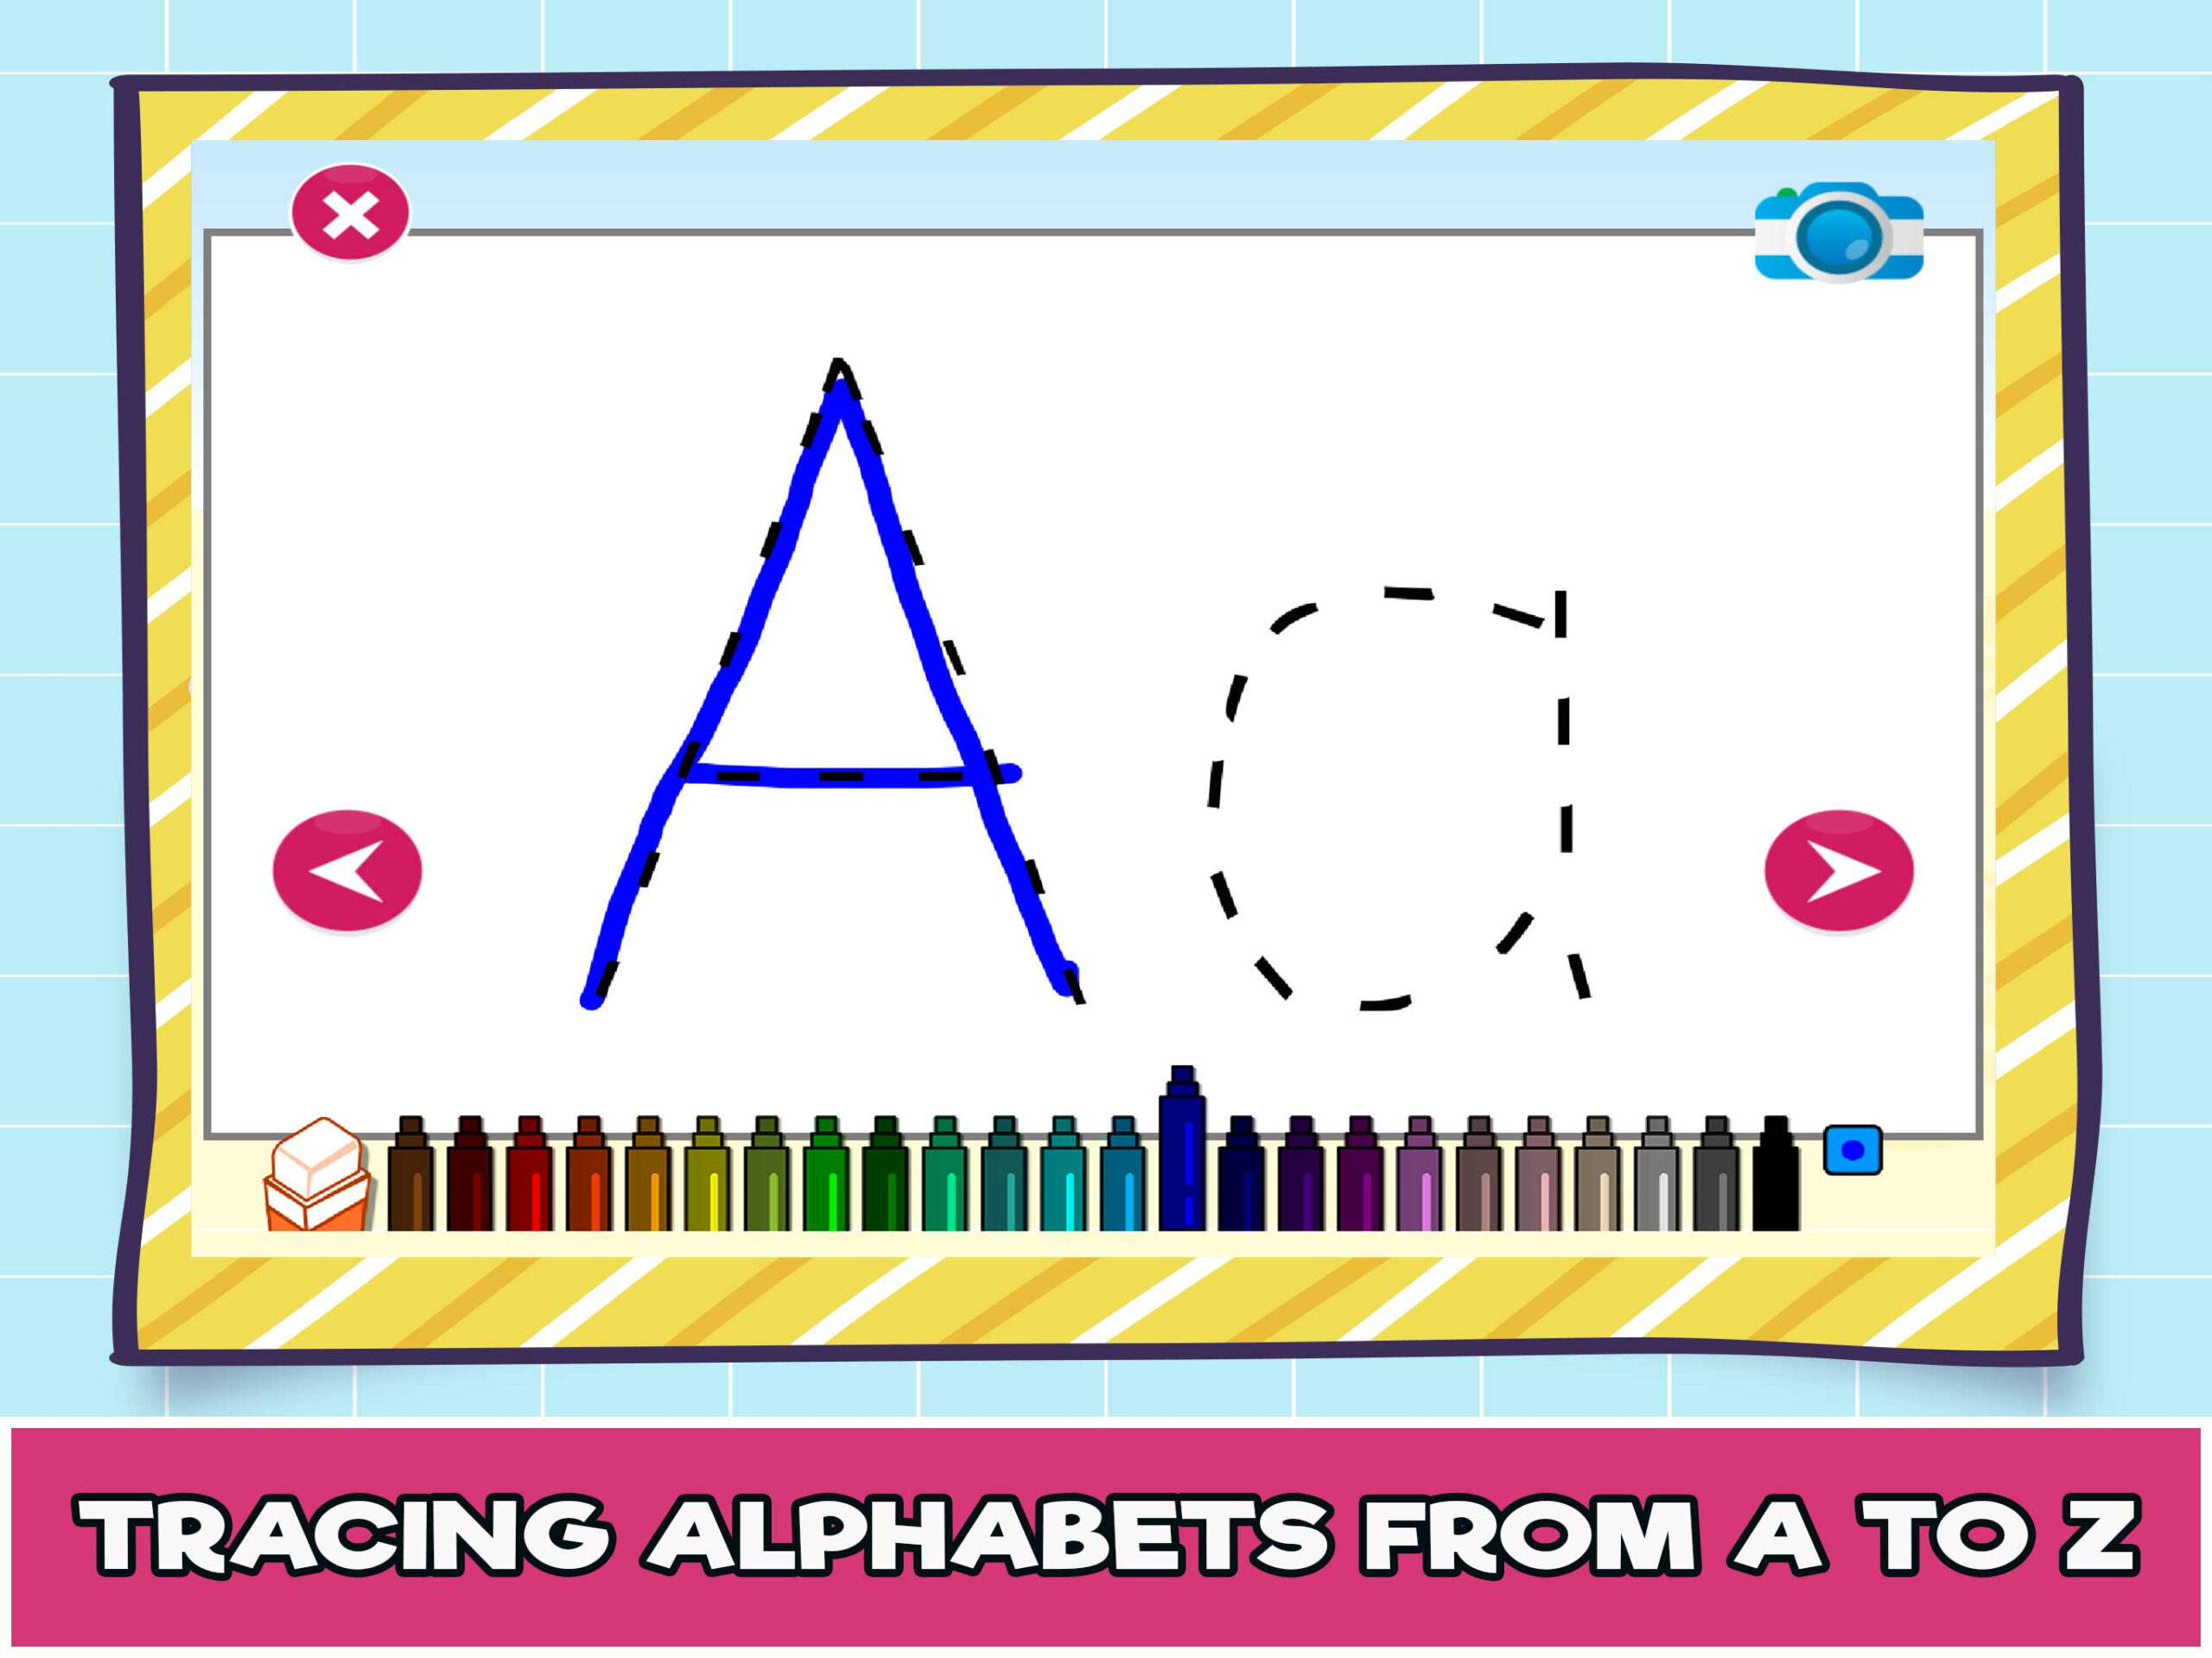 Free Online Alphabet Tracing Game For Kids - The Learning Apps regarding Letter Tracing Interactive